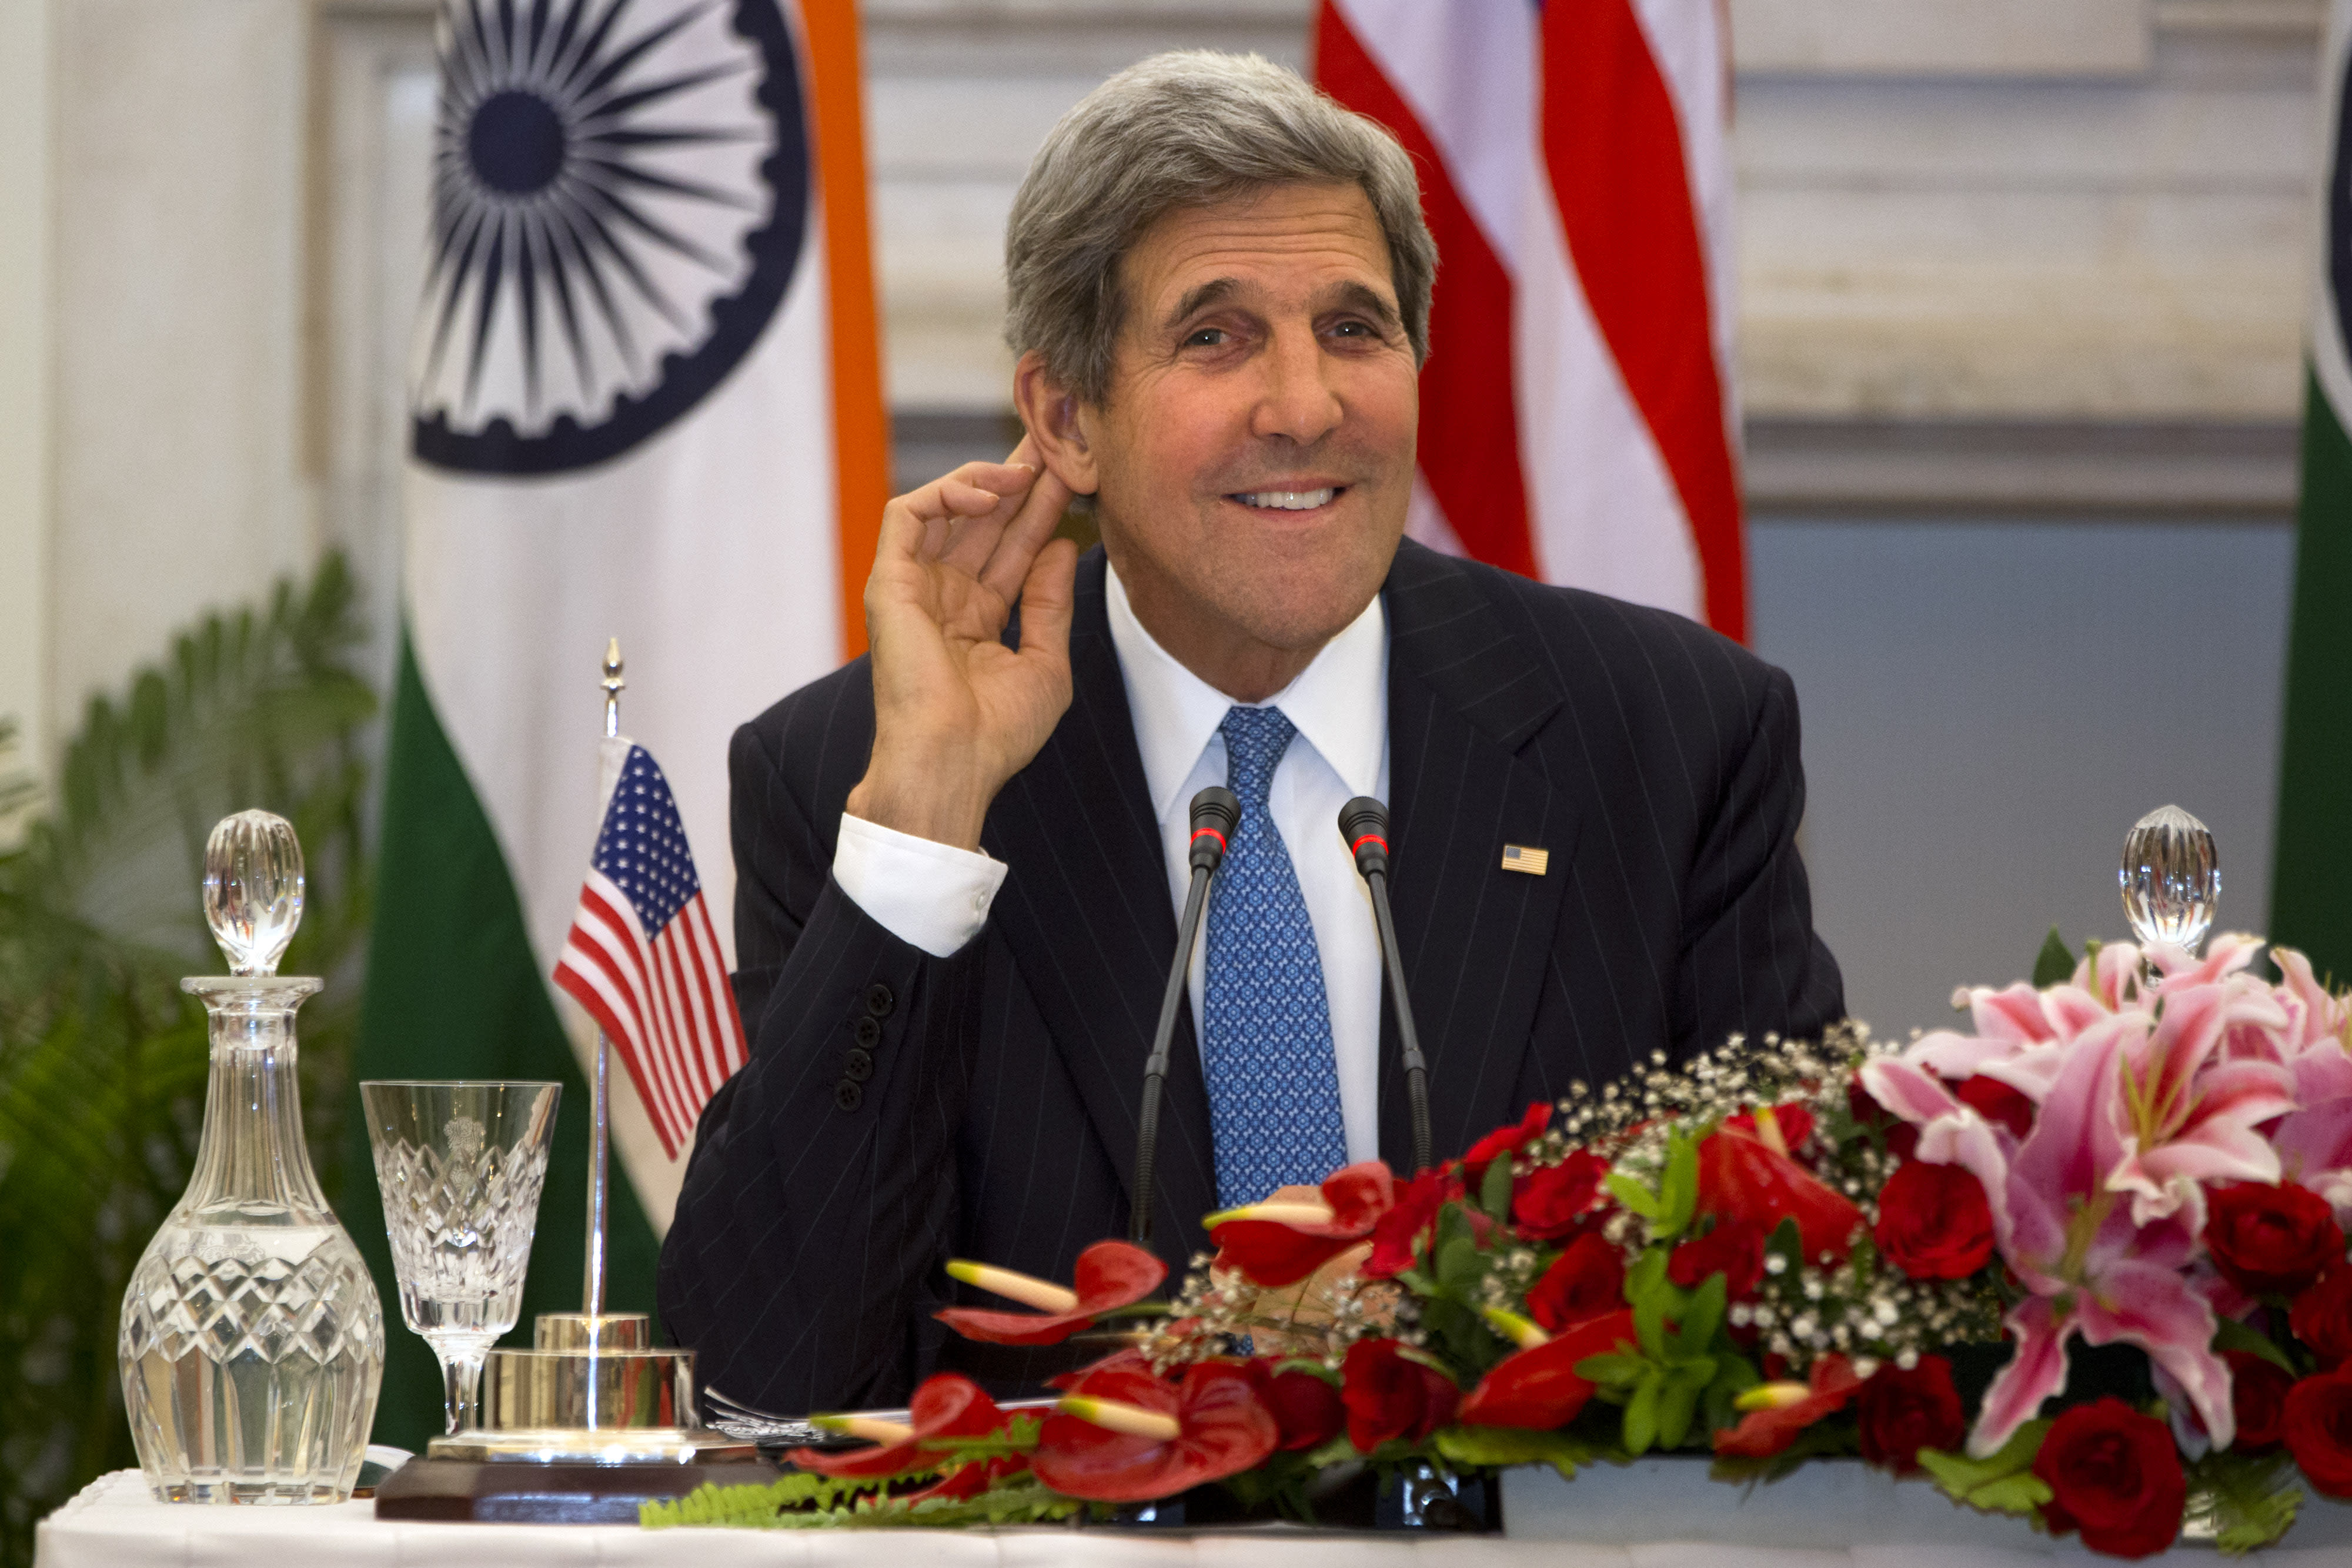 U.S. Secretary of State John Kerry smiles as he asks a reporter to repeat a question during a news conference with Indian Foreign Minister Salman Khurshid, not pictured, at Hyderabad House in New Delhi, India on Monday, June 24, 2013, during Kerry's first visit to India as secretary. (AP Photo/Jacquelyn Martin, Pool)